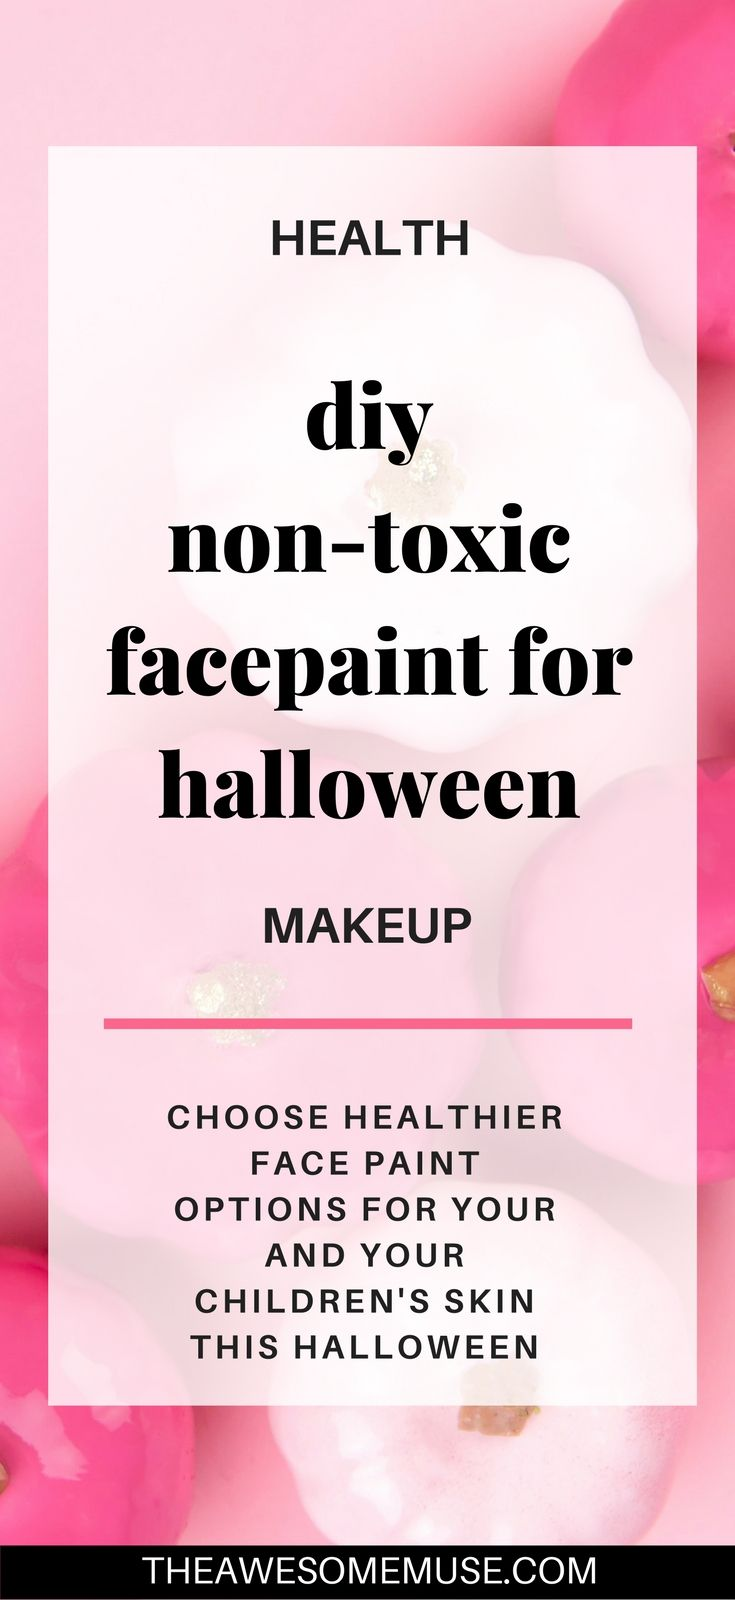 You can make non-toxic face paint easily yourself with this simple recipe diy. non-toxic face paint | face paint recipe | make face paint | facepaint for football games | how to make facepaint | facepainting ideas | facepaint halloween | facepaint ideas for kids | face painting easy | face painting adults